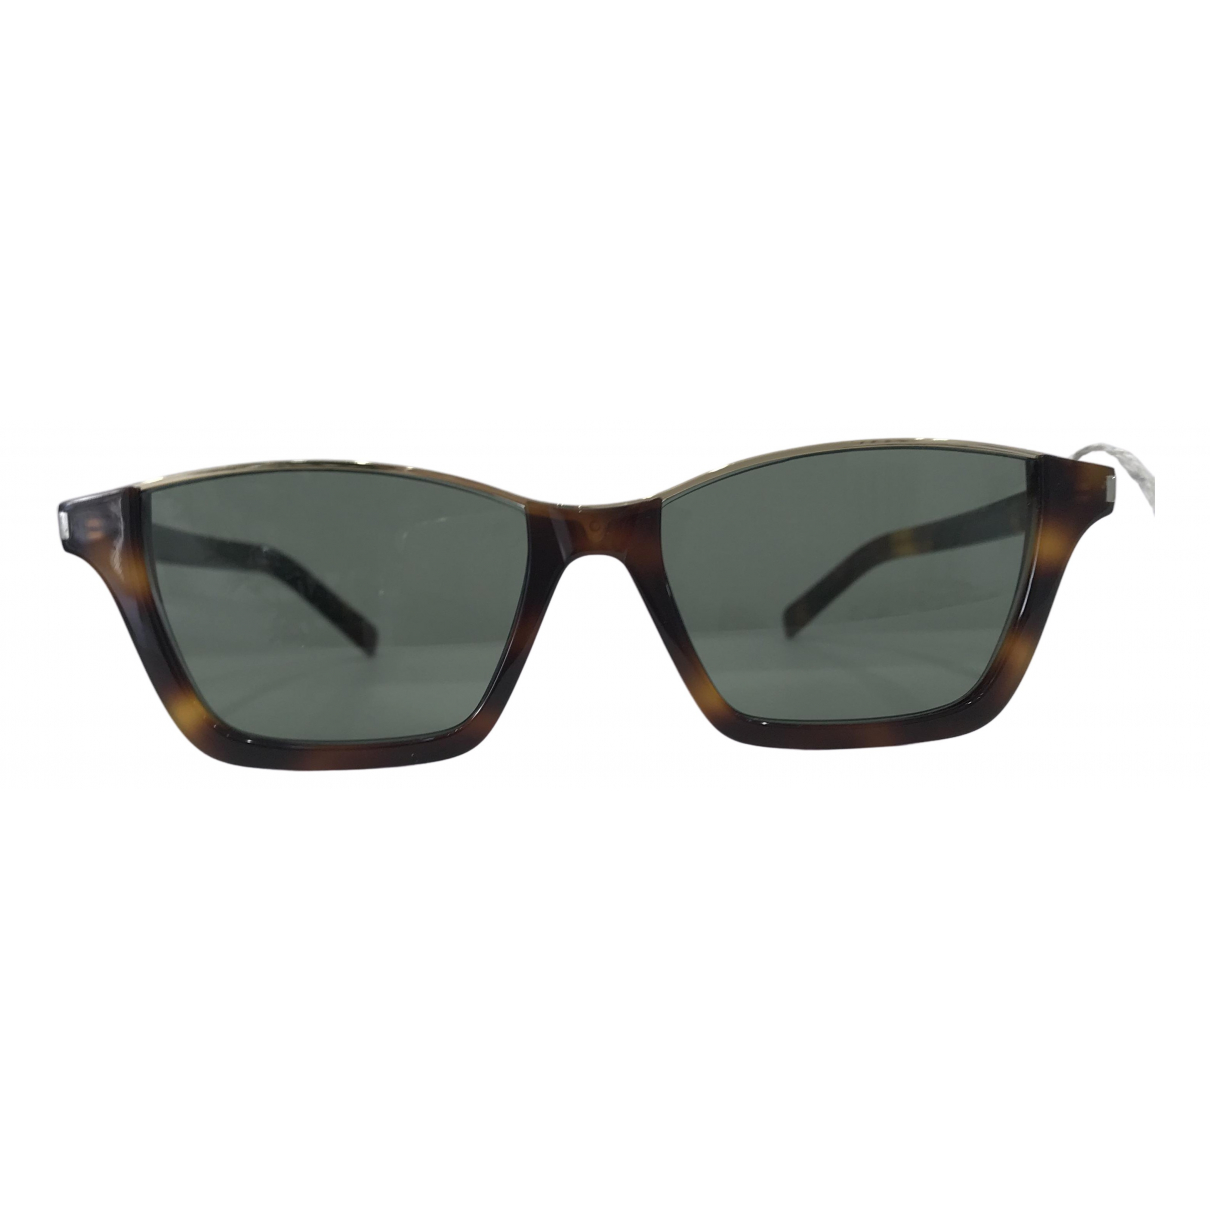 Saint Laurent N Brown Sunglasses for Women N